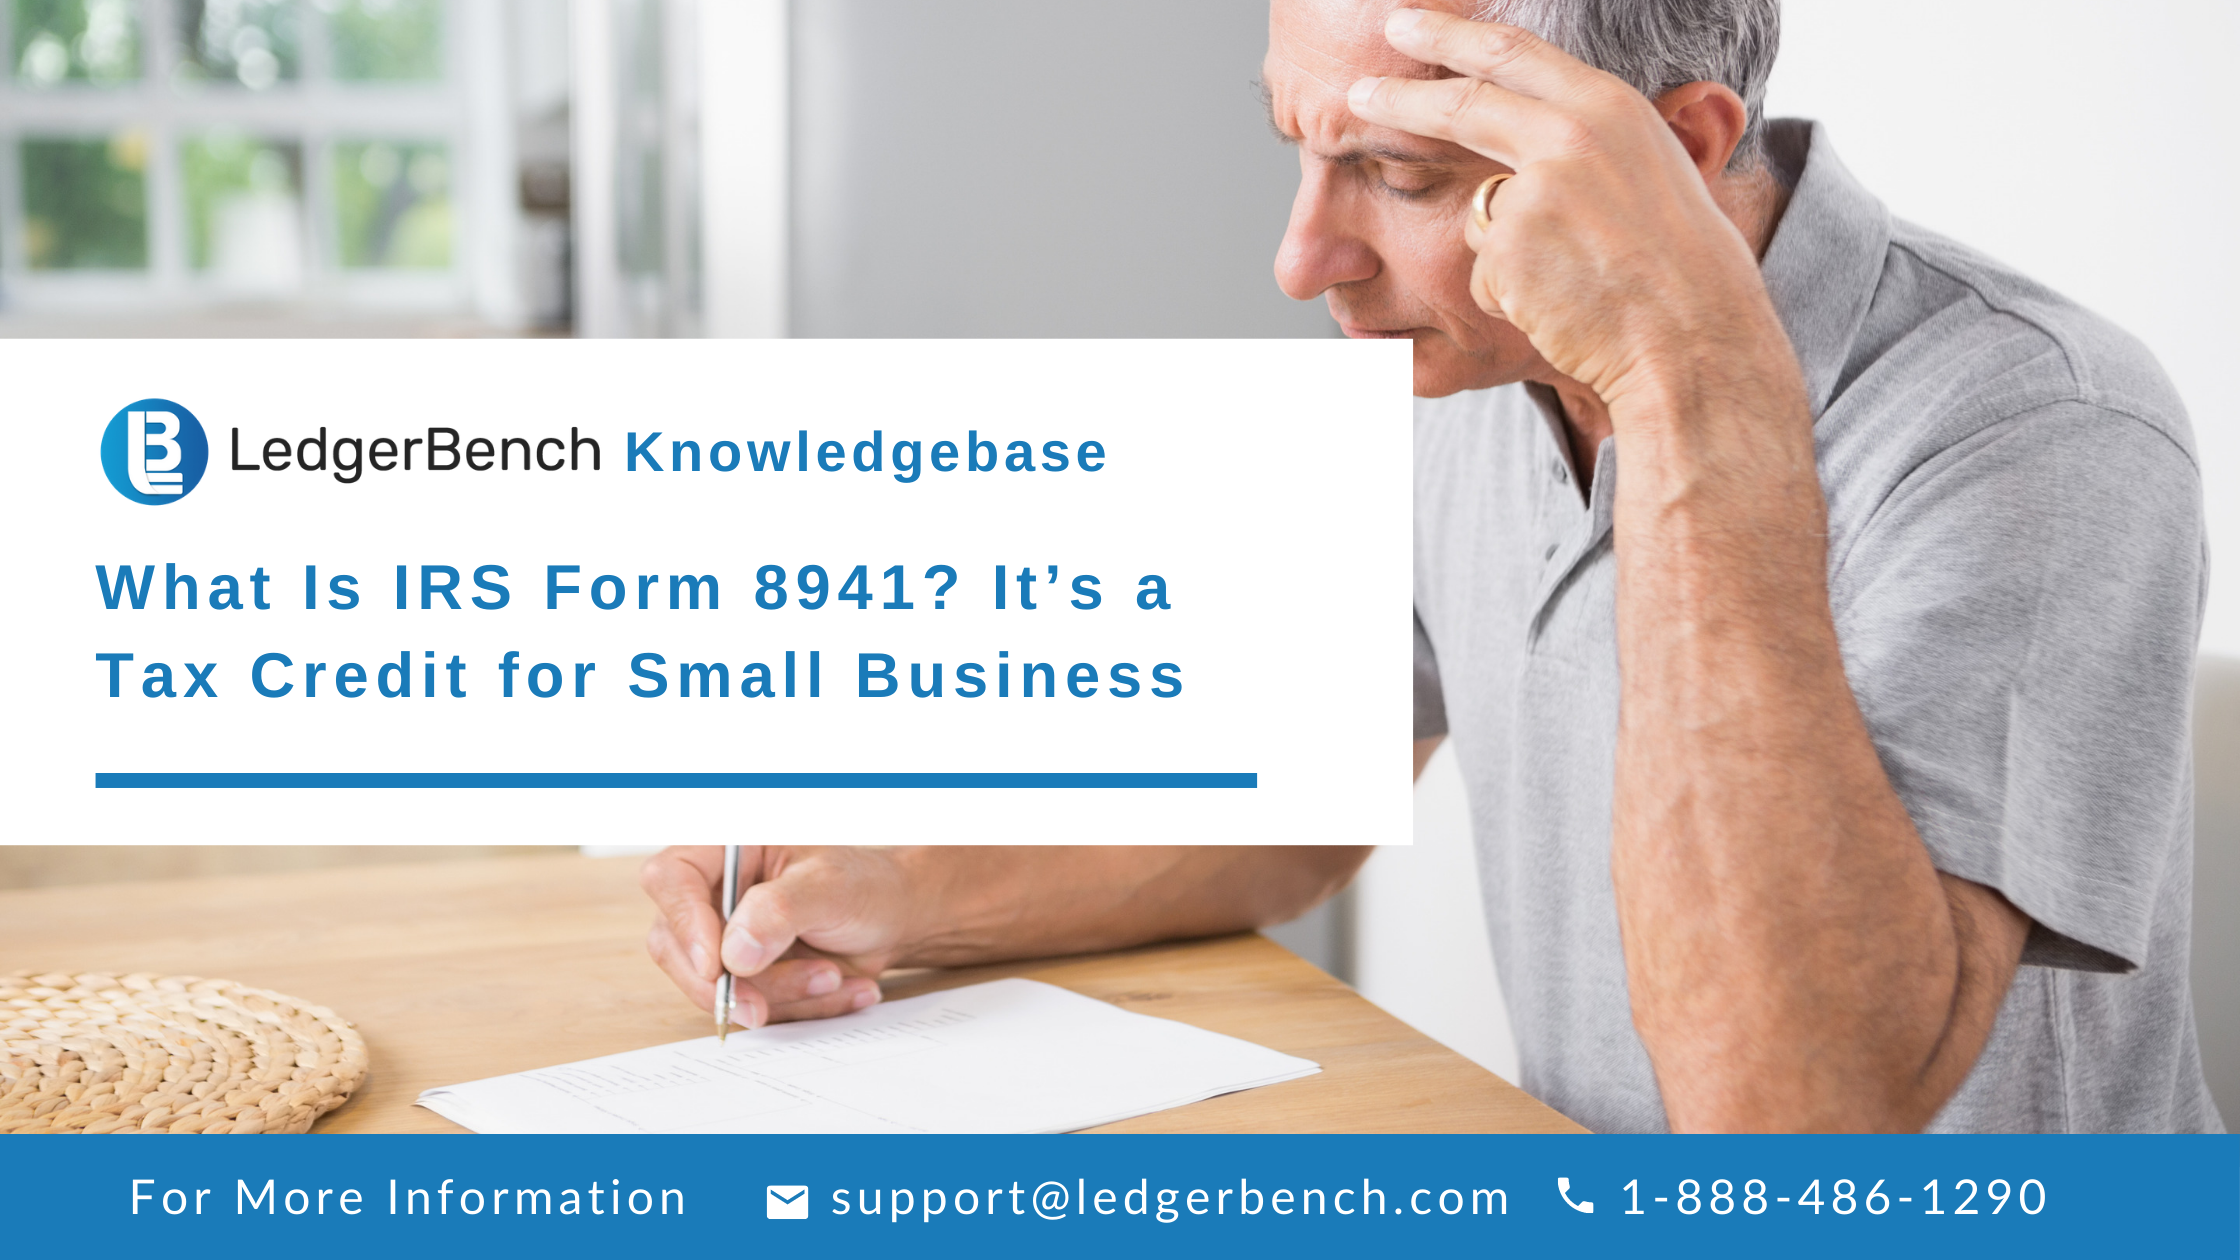 What Is IRS Form 8941? It's a Tax Credit for Small Business